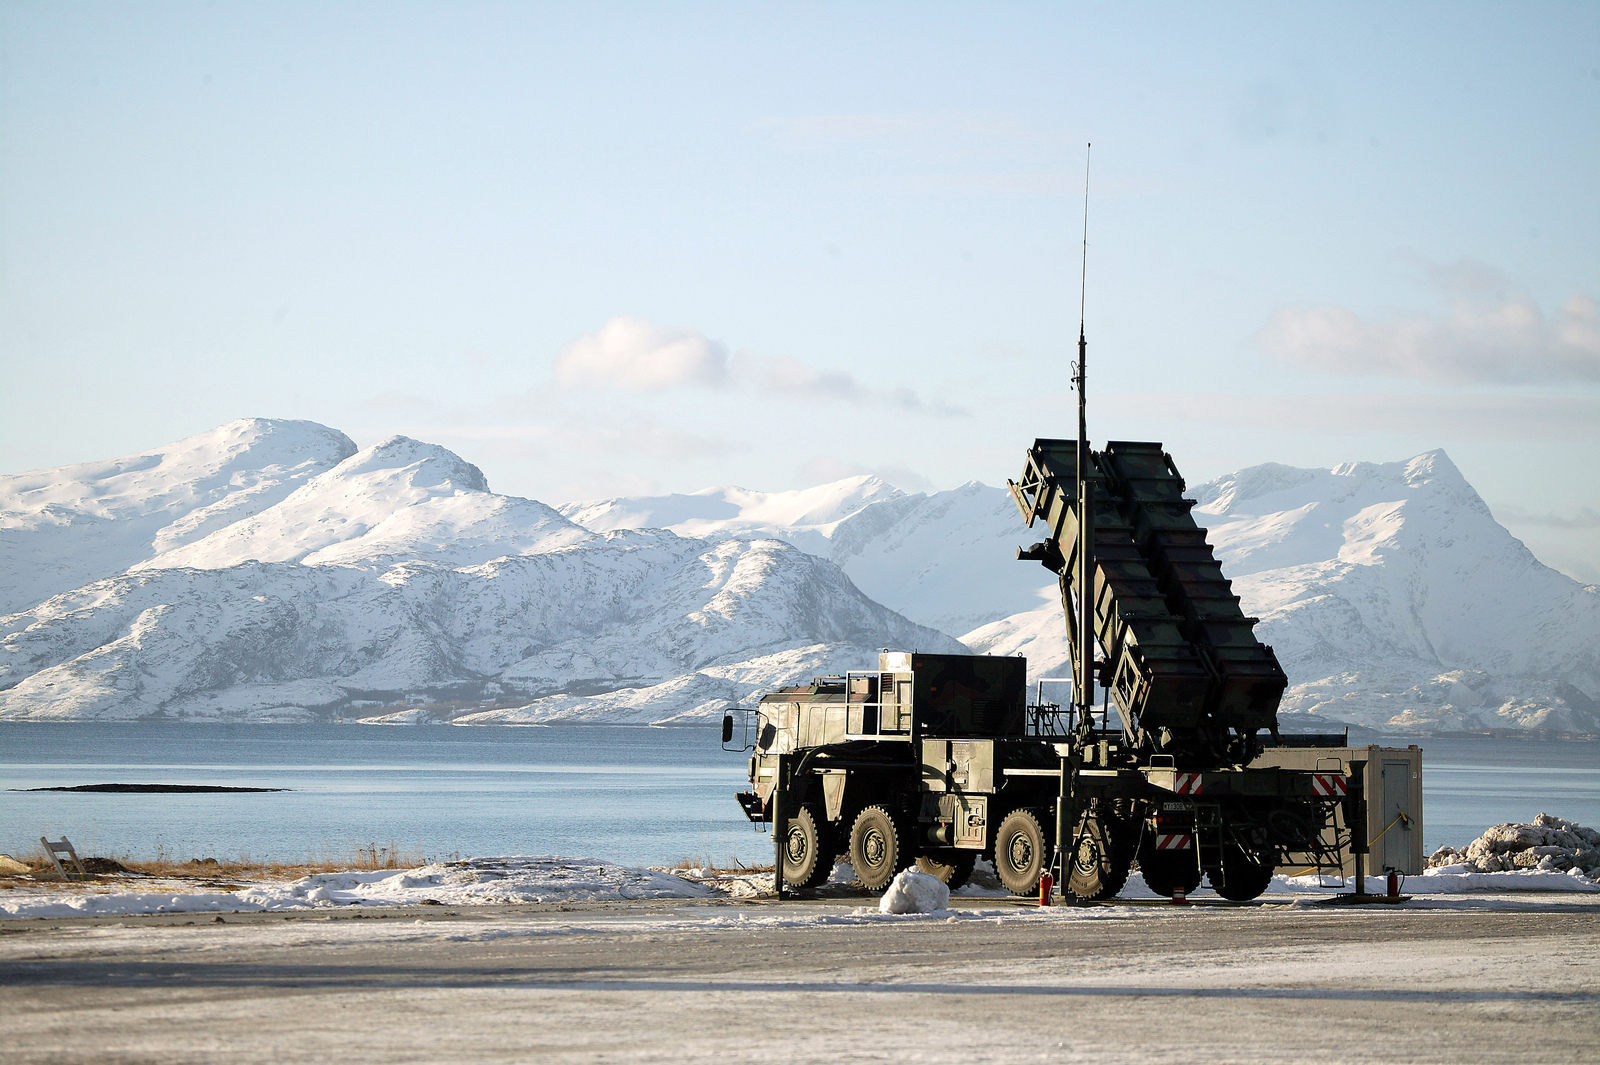 Raytheon's Patriot air defense missile system.